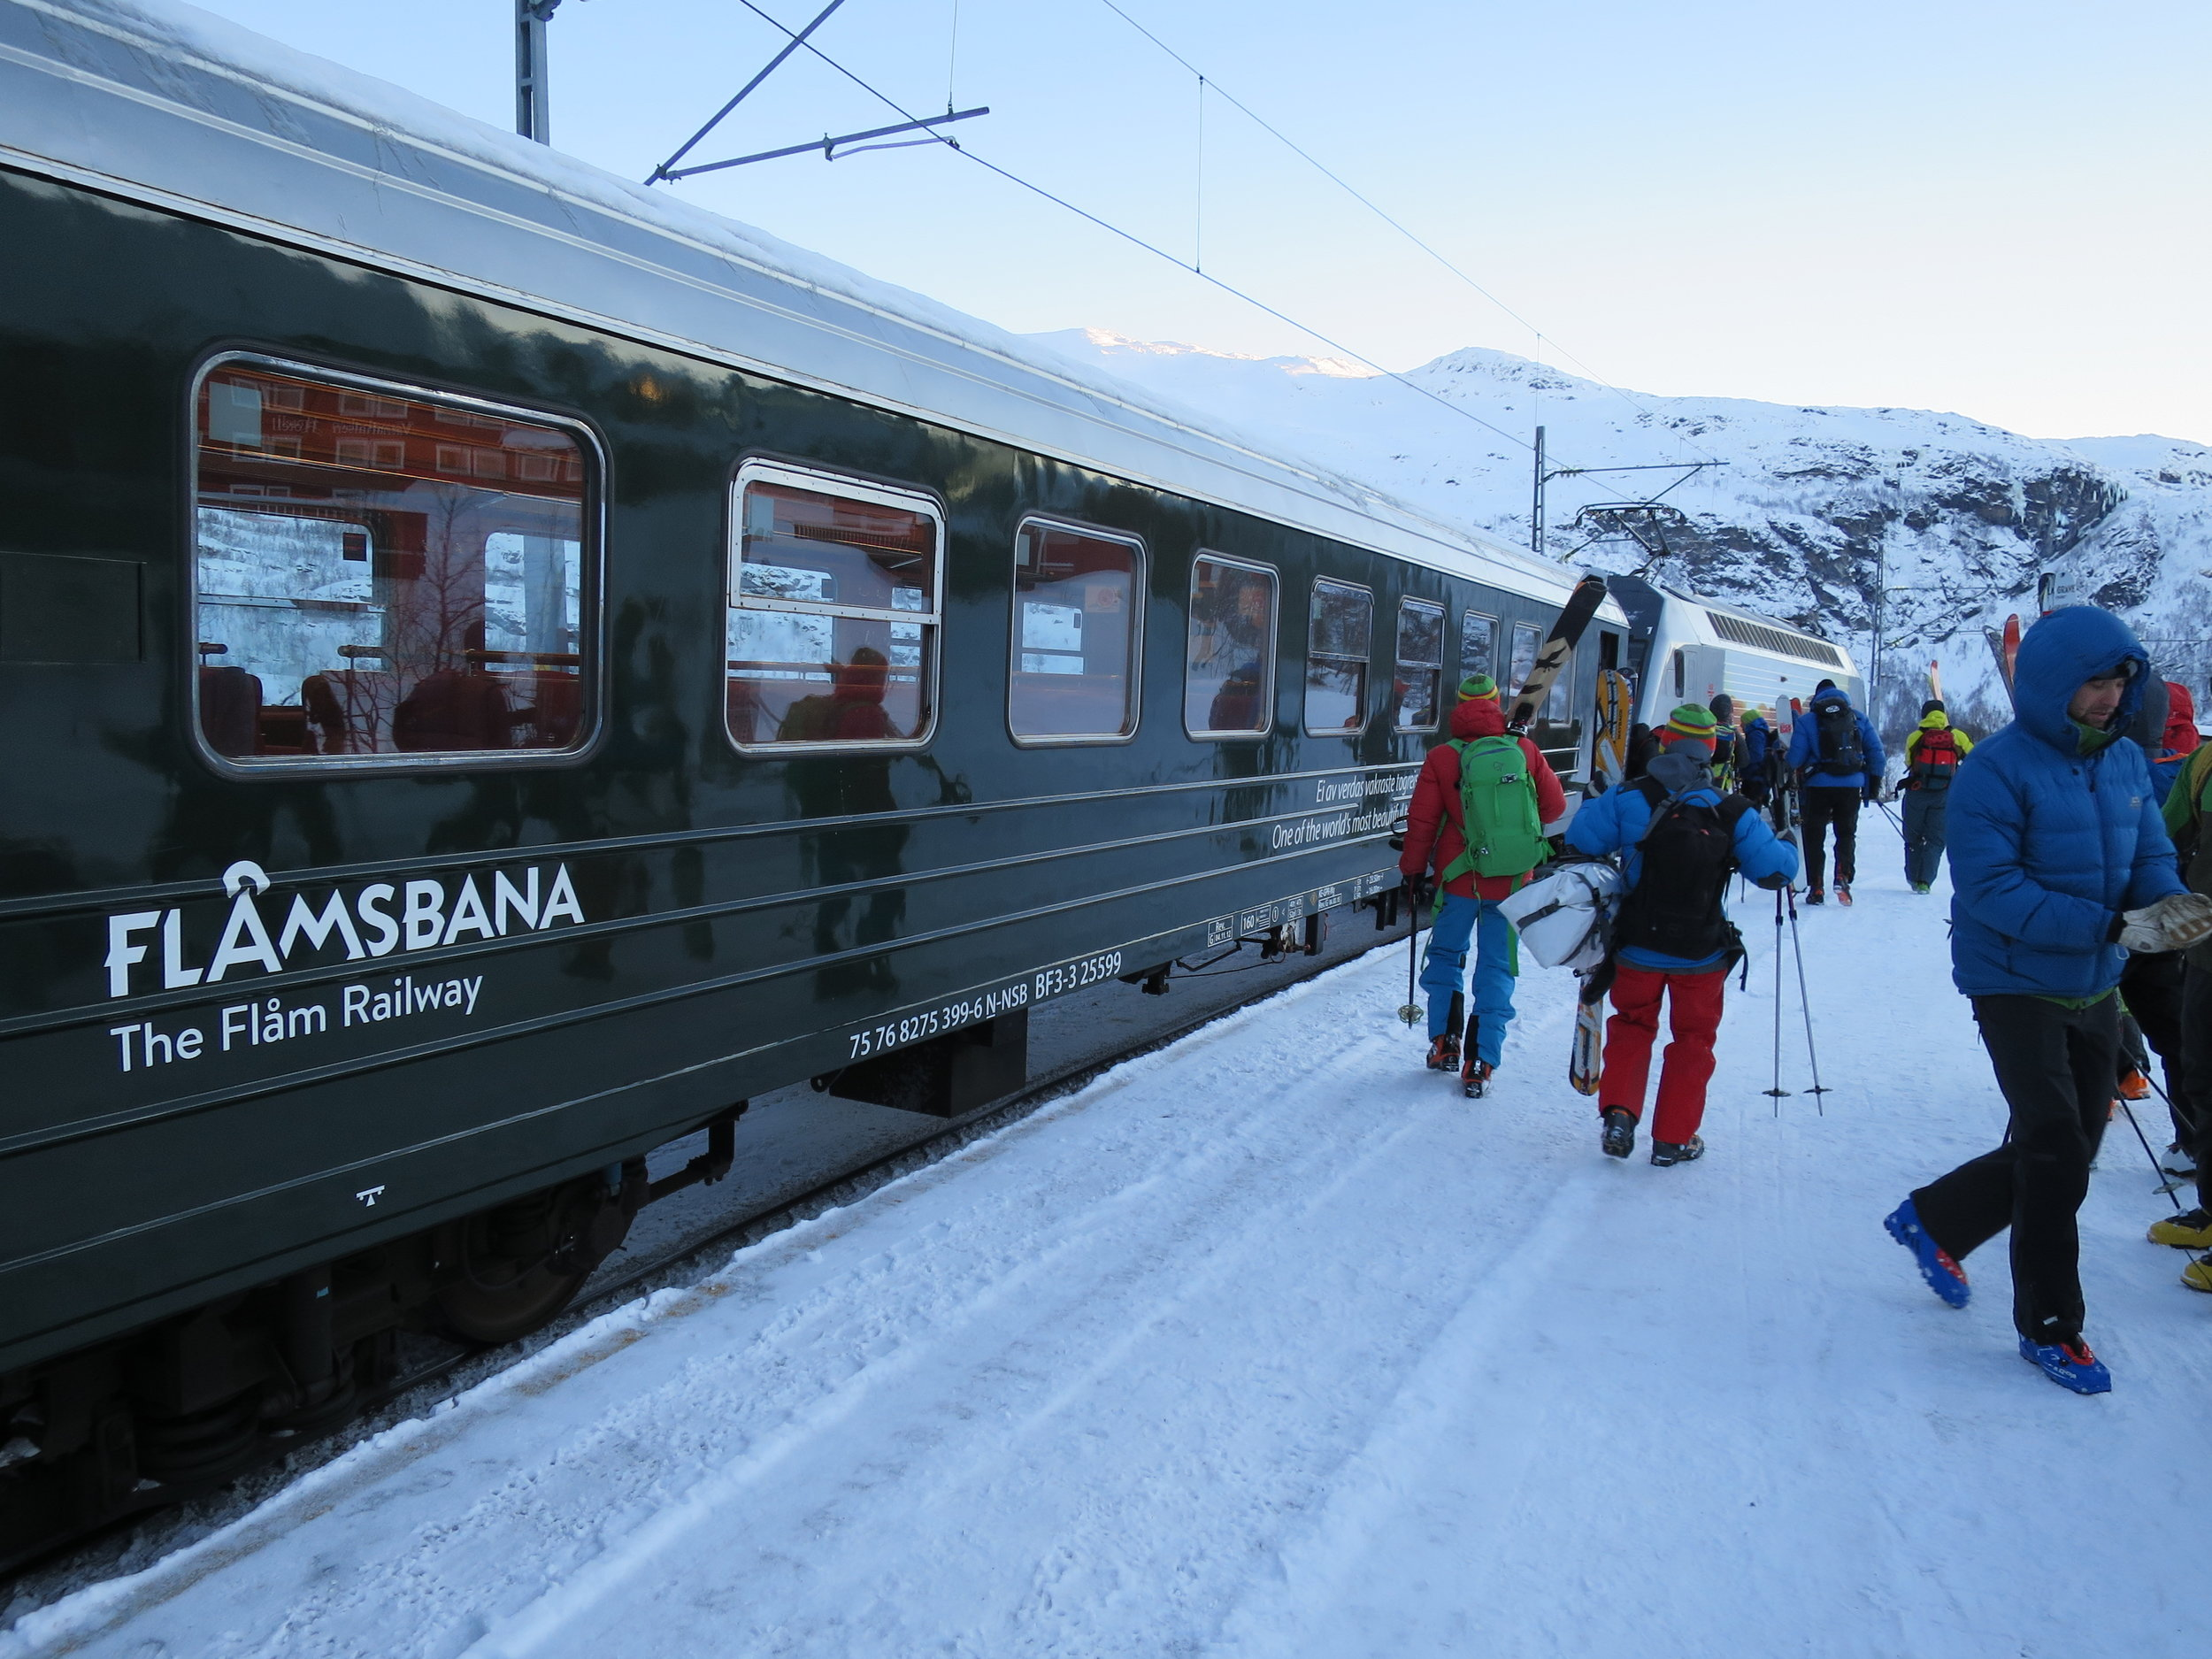 Basecamp Hemsedal and Flåm: Ski touring